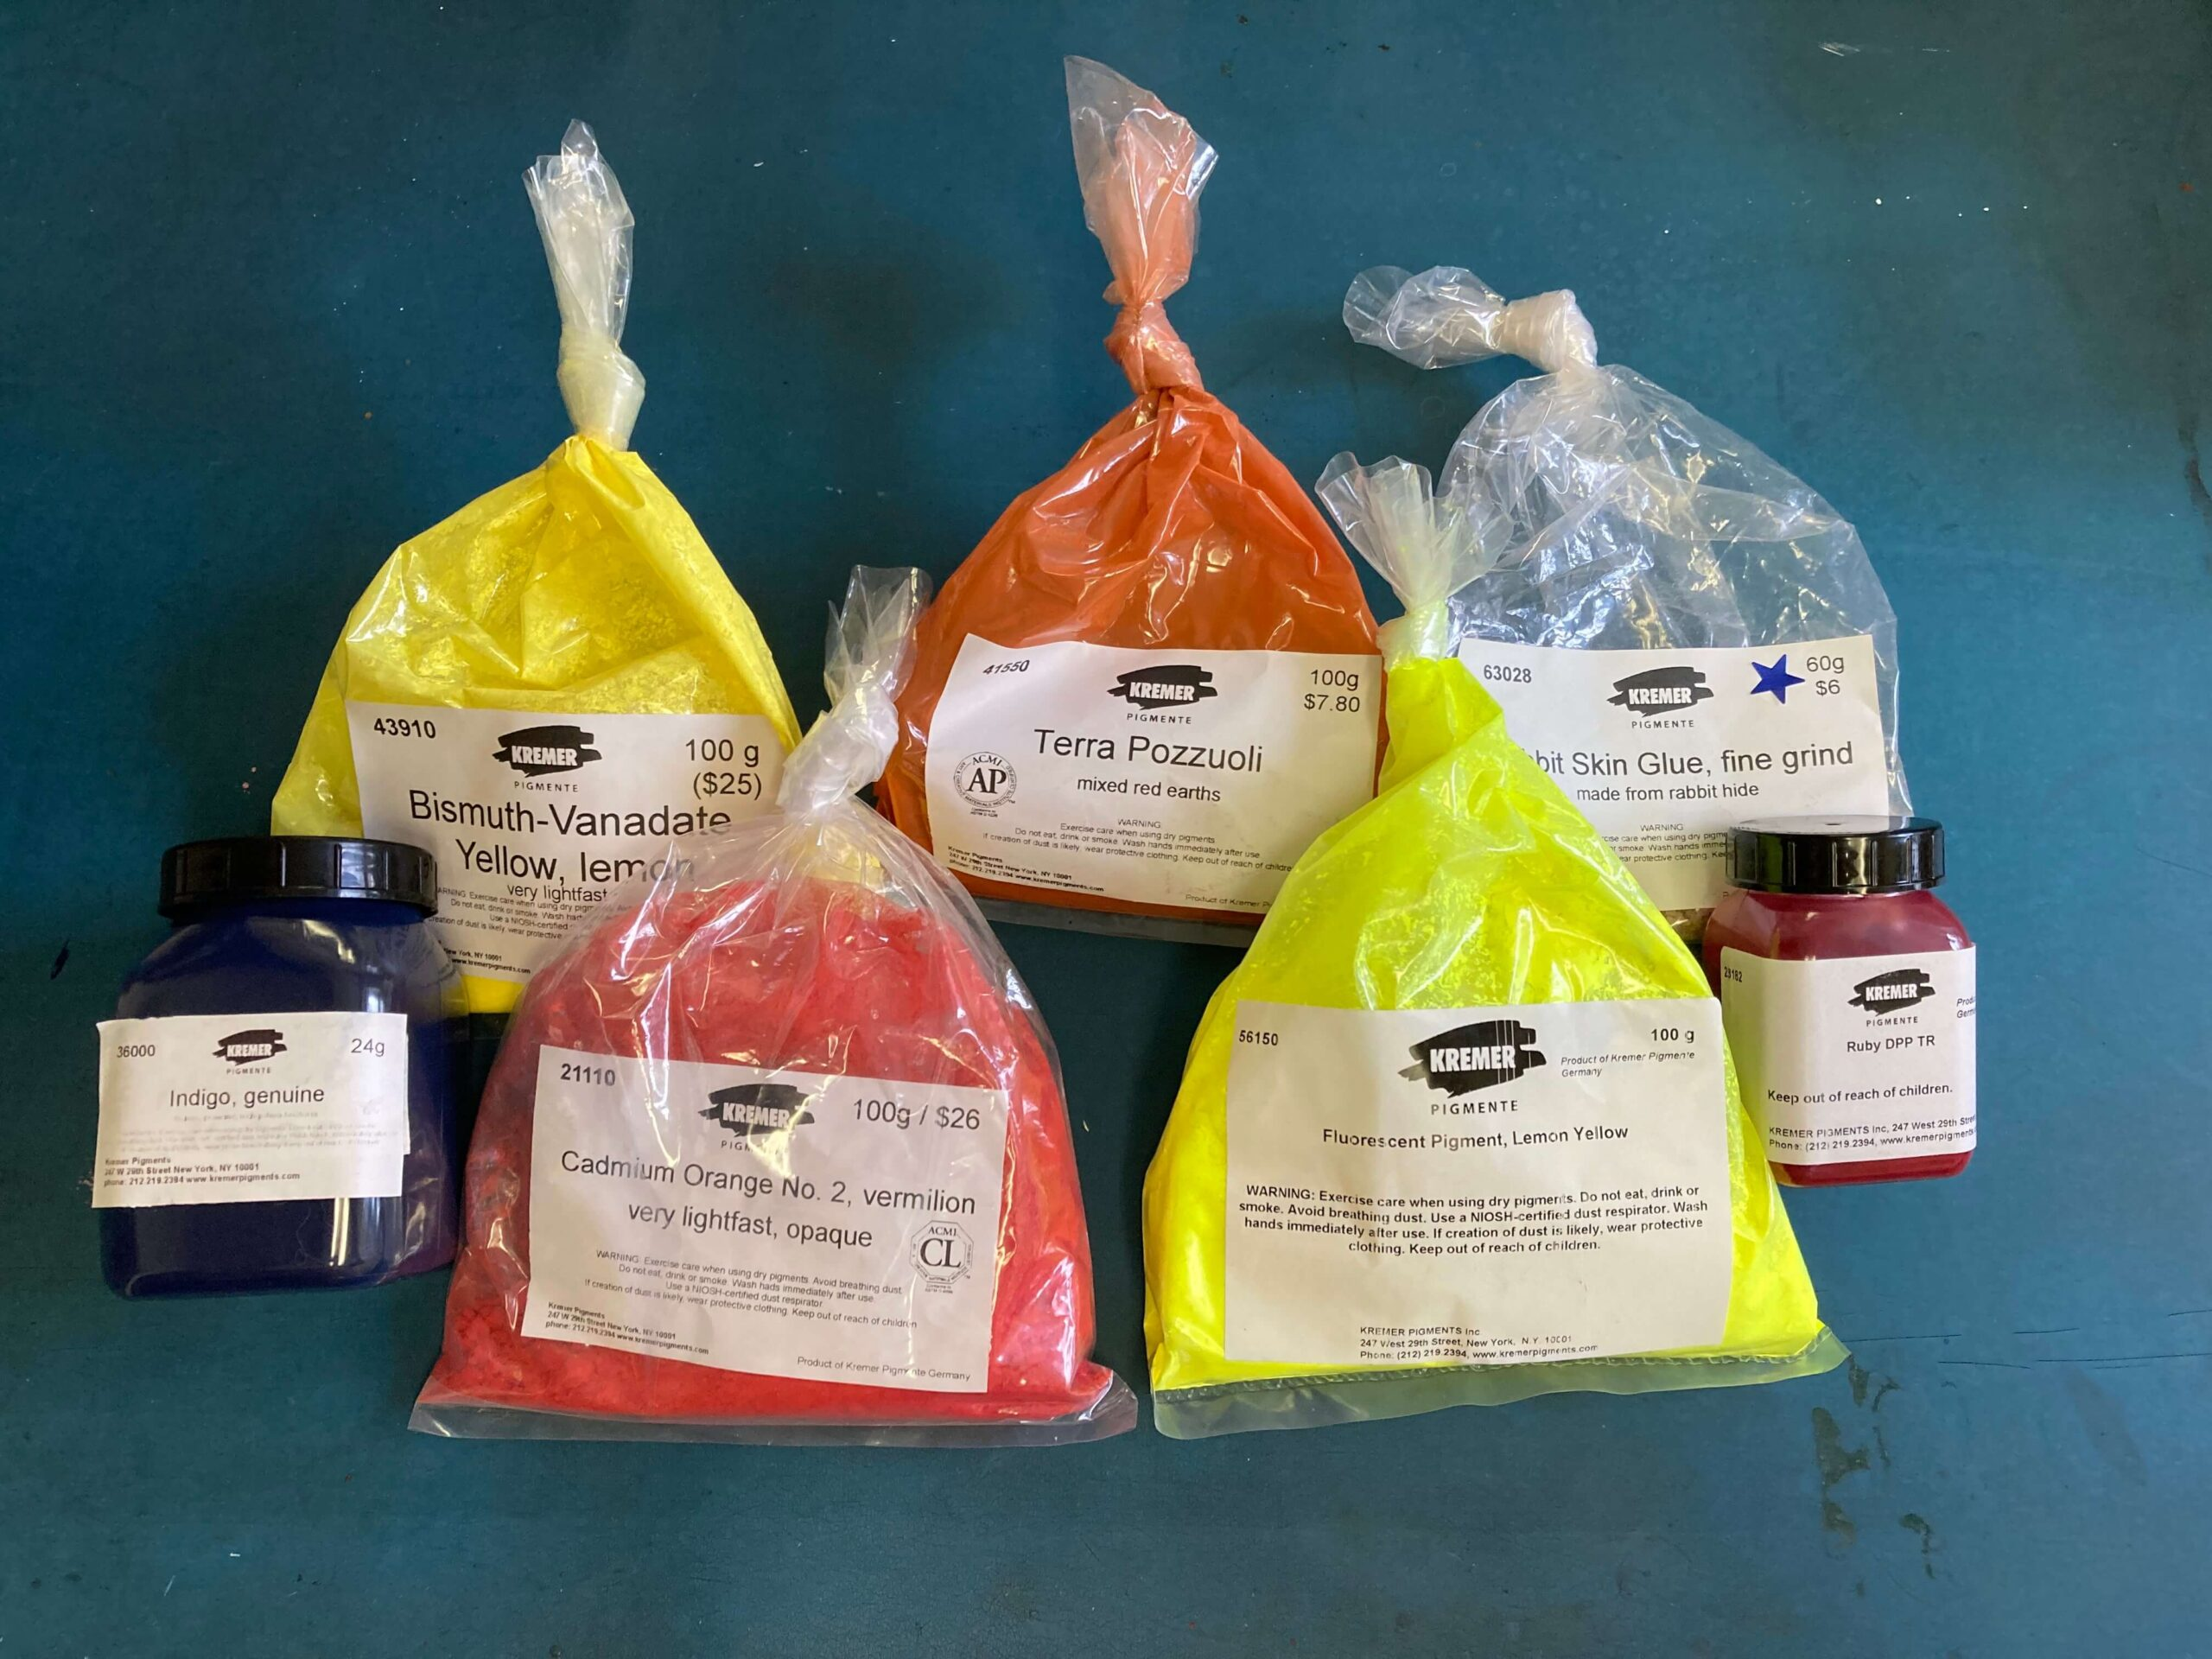 A mix of earth, inorganic and dye-based pigments